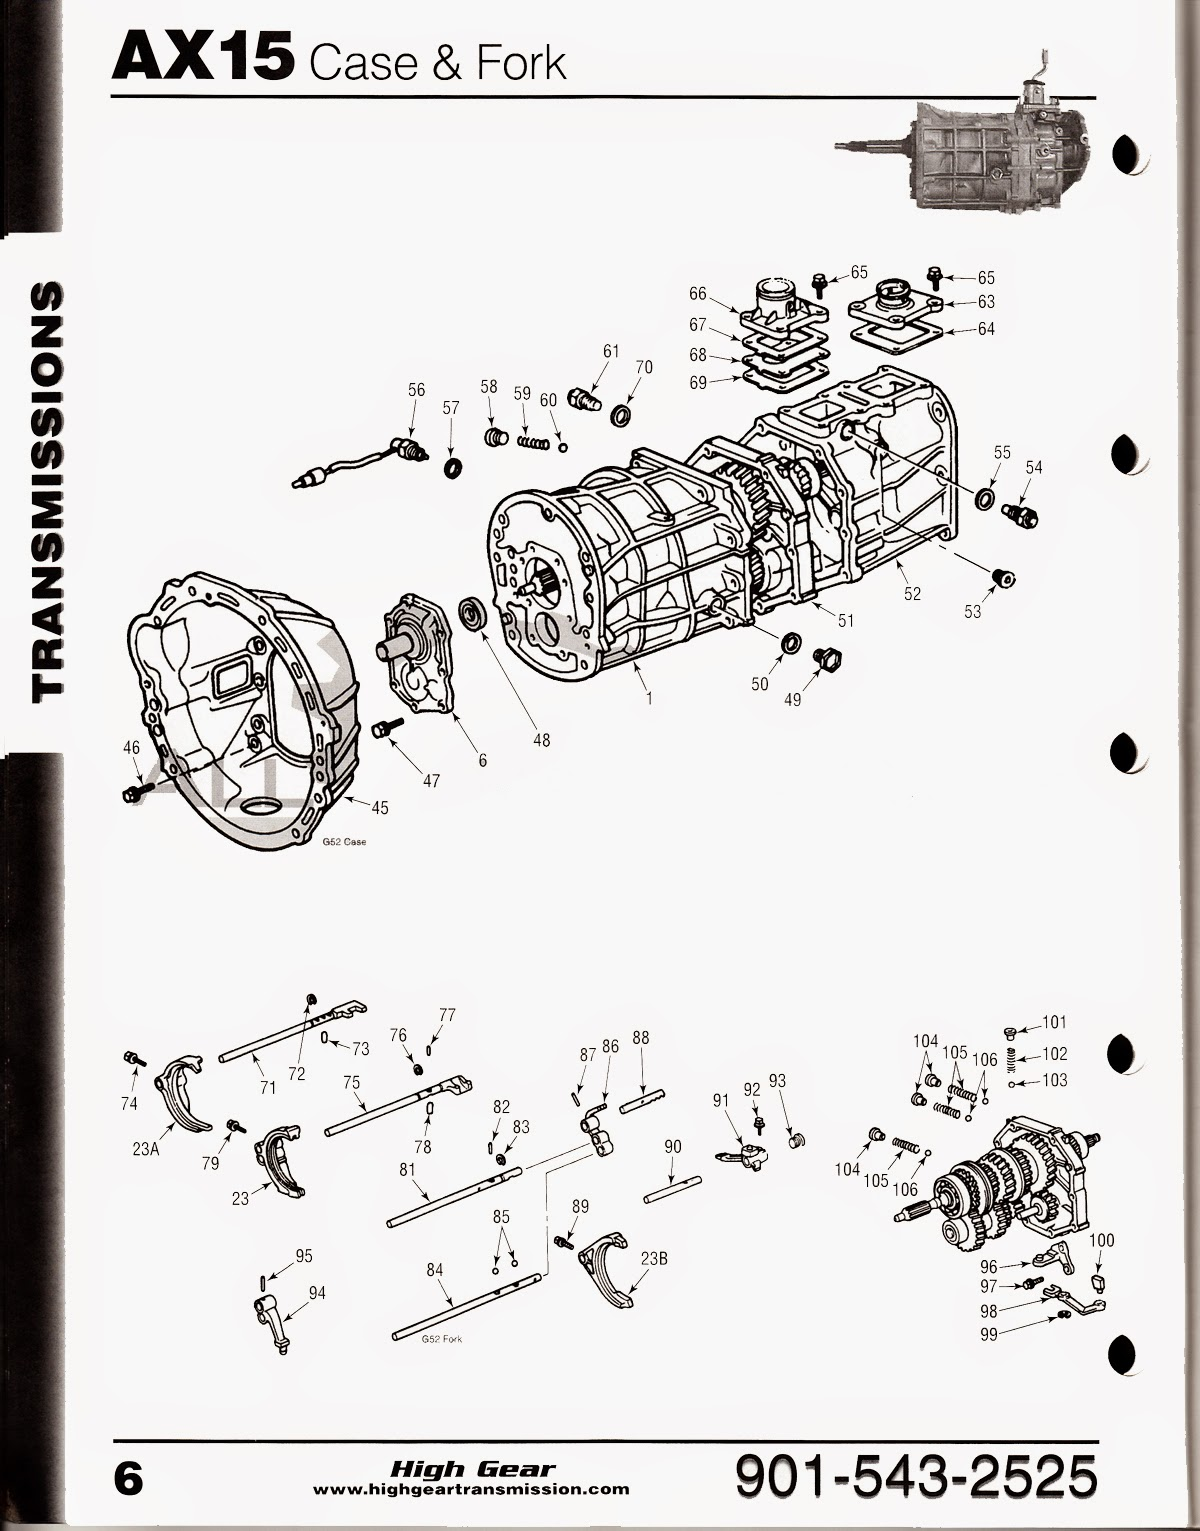 hight resolution of jeep tj manual transmission diagram data schematic diagramax15 transmission diagram wiring diagram post 2008 jeep wrangler